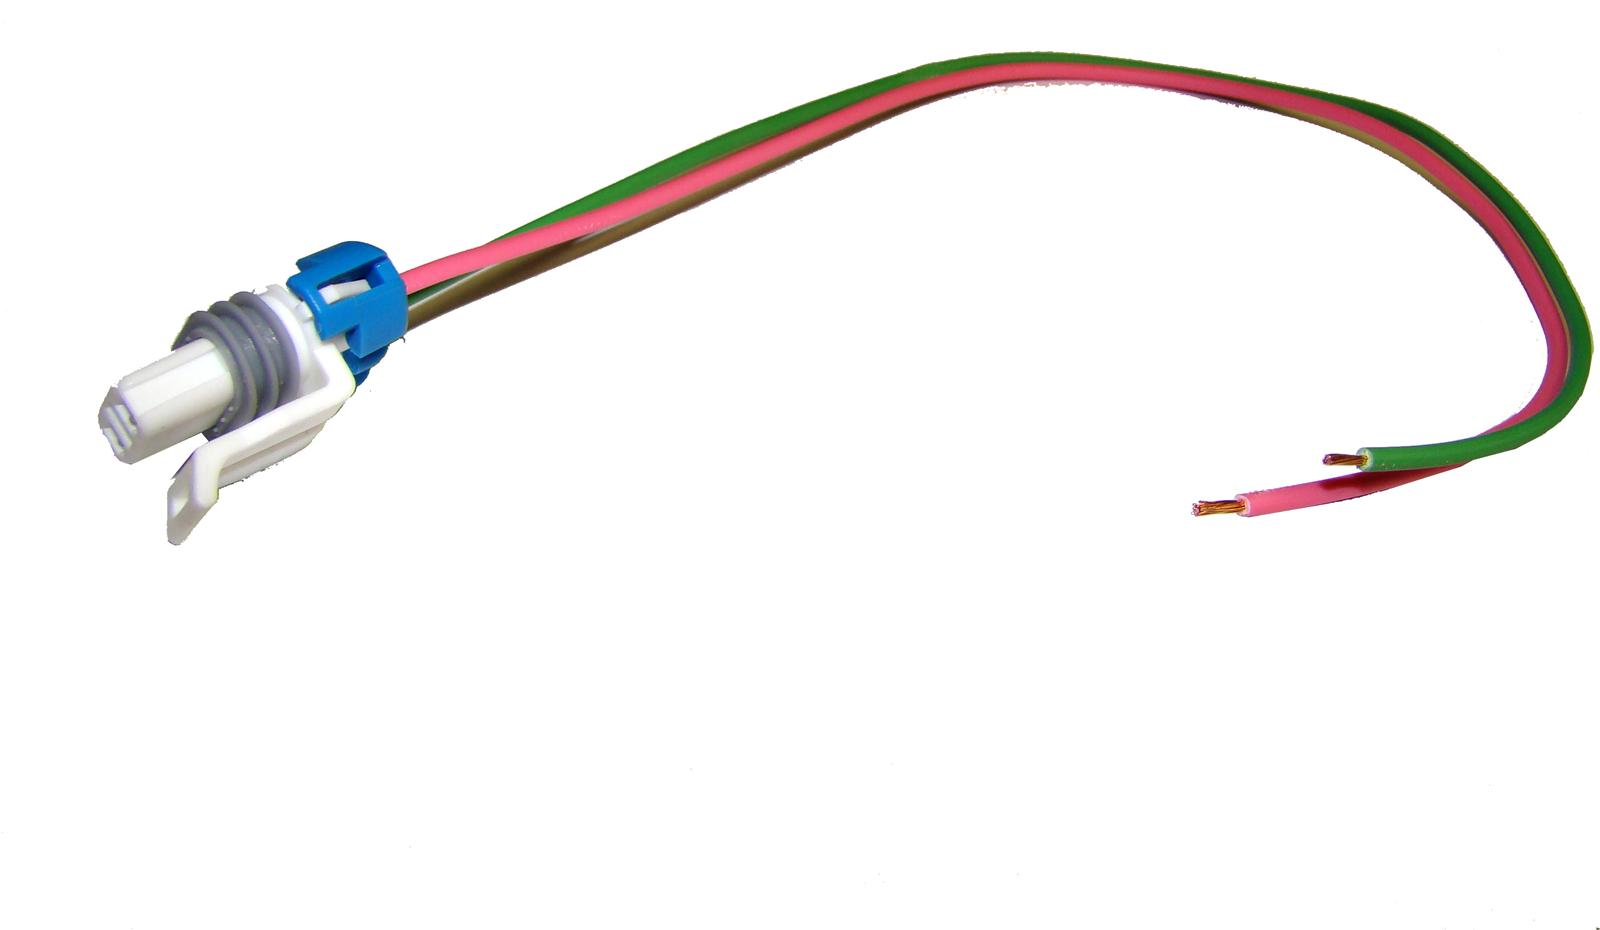 american autowire wiring connectors 500950 free shipping on orders 99 at summit racing